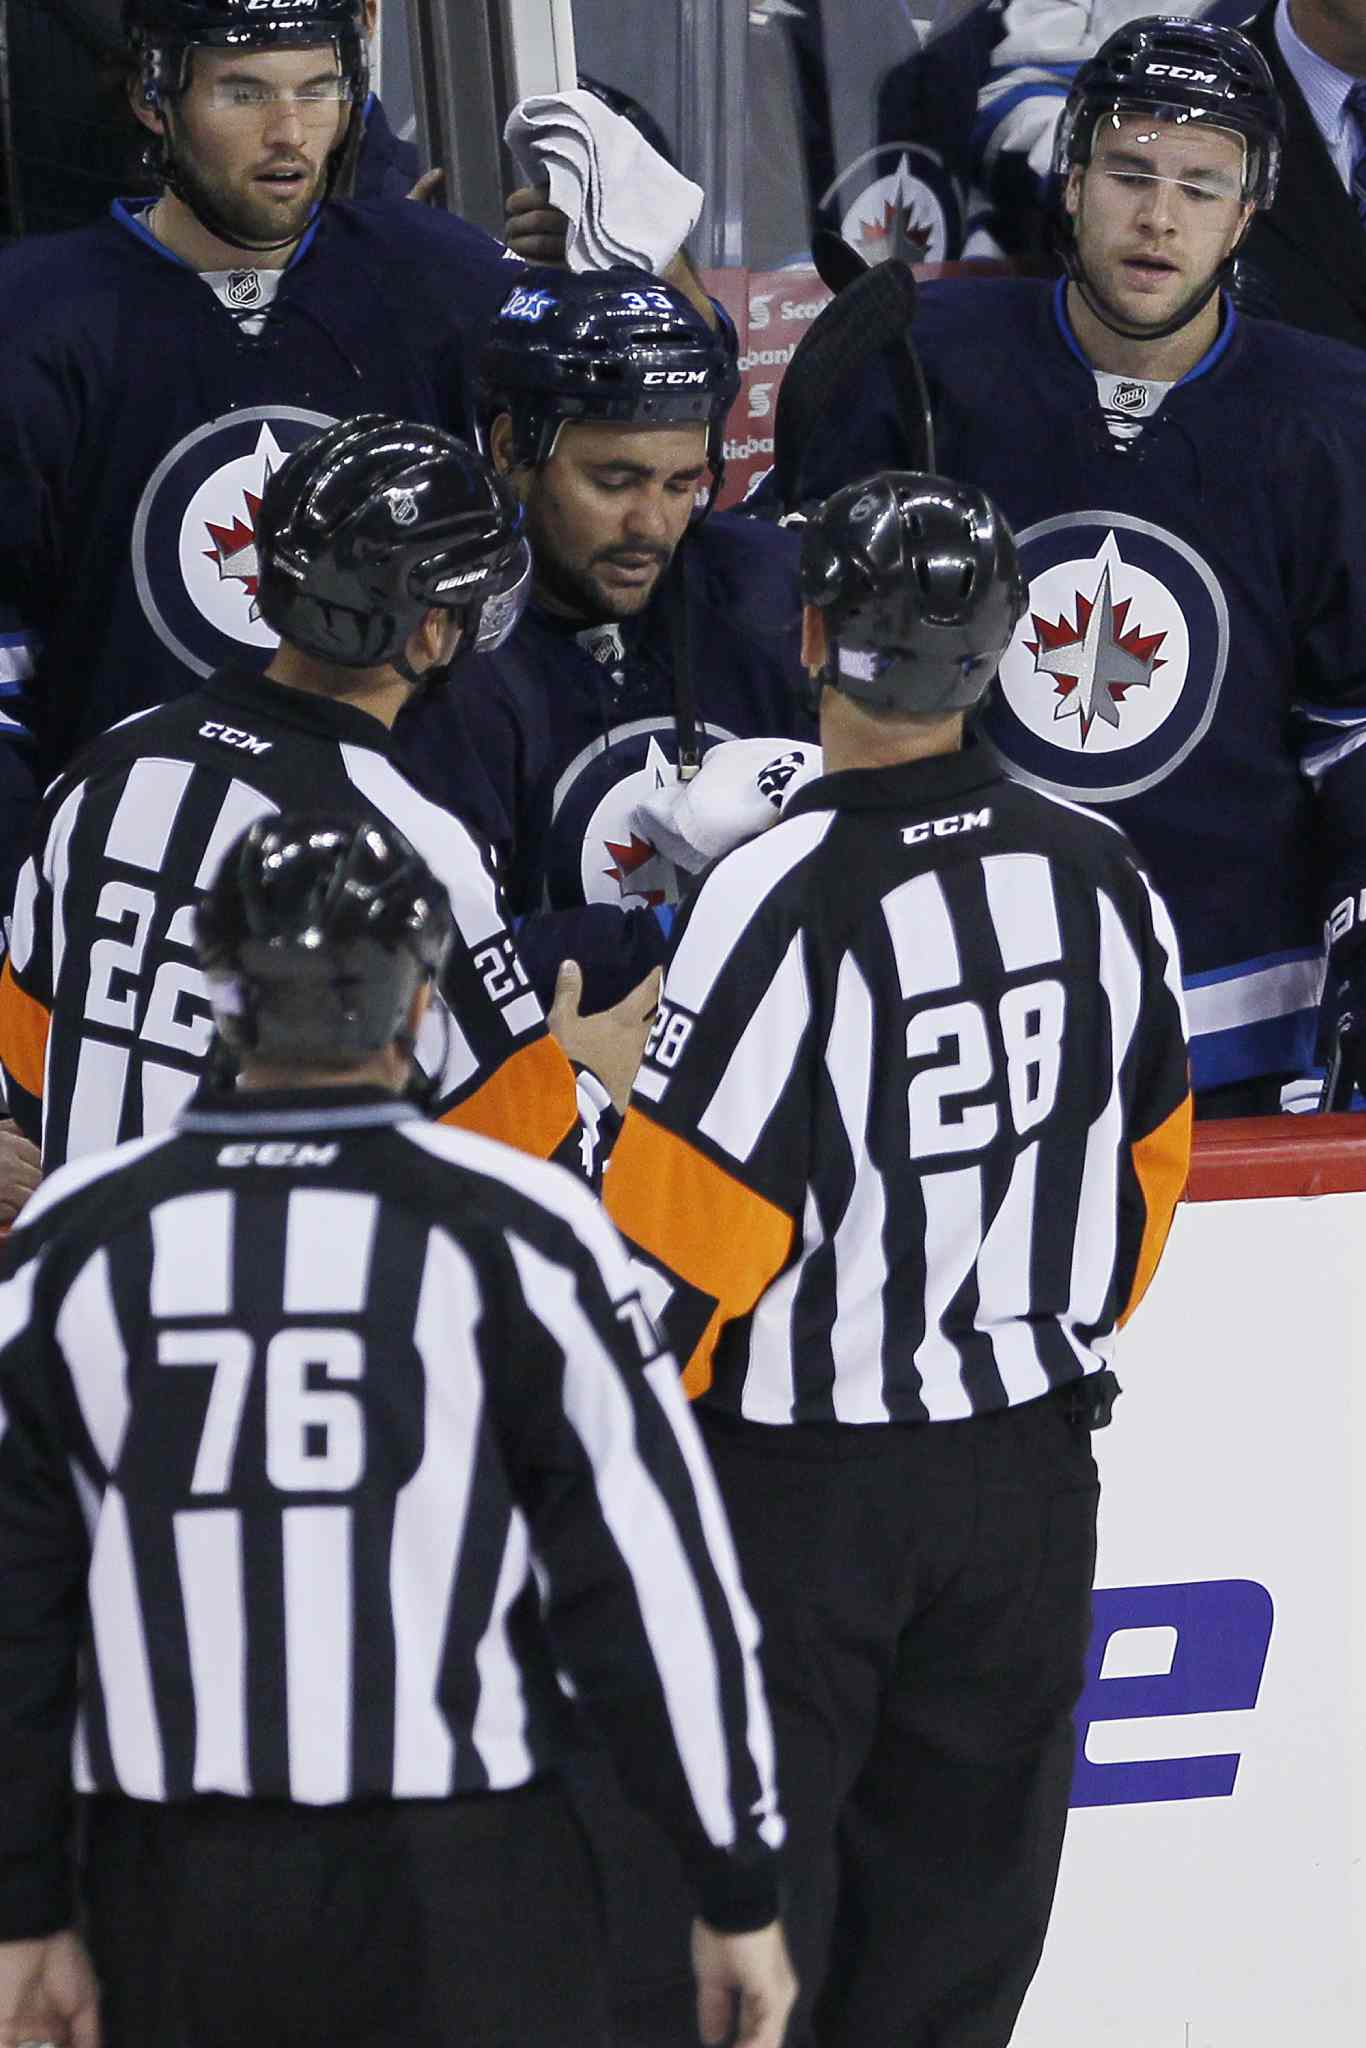 Referees check the eye injury of Winnipeg Jets defenceman Dustin Byfuglien during the first period.